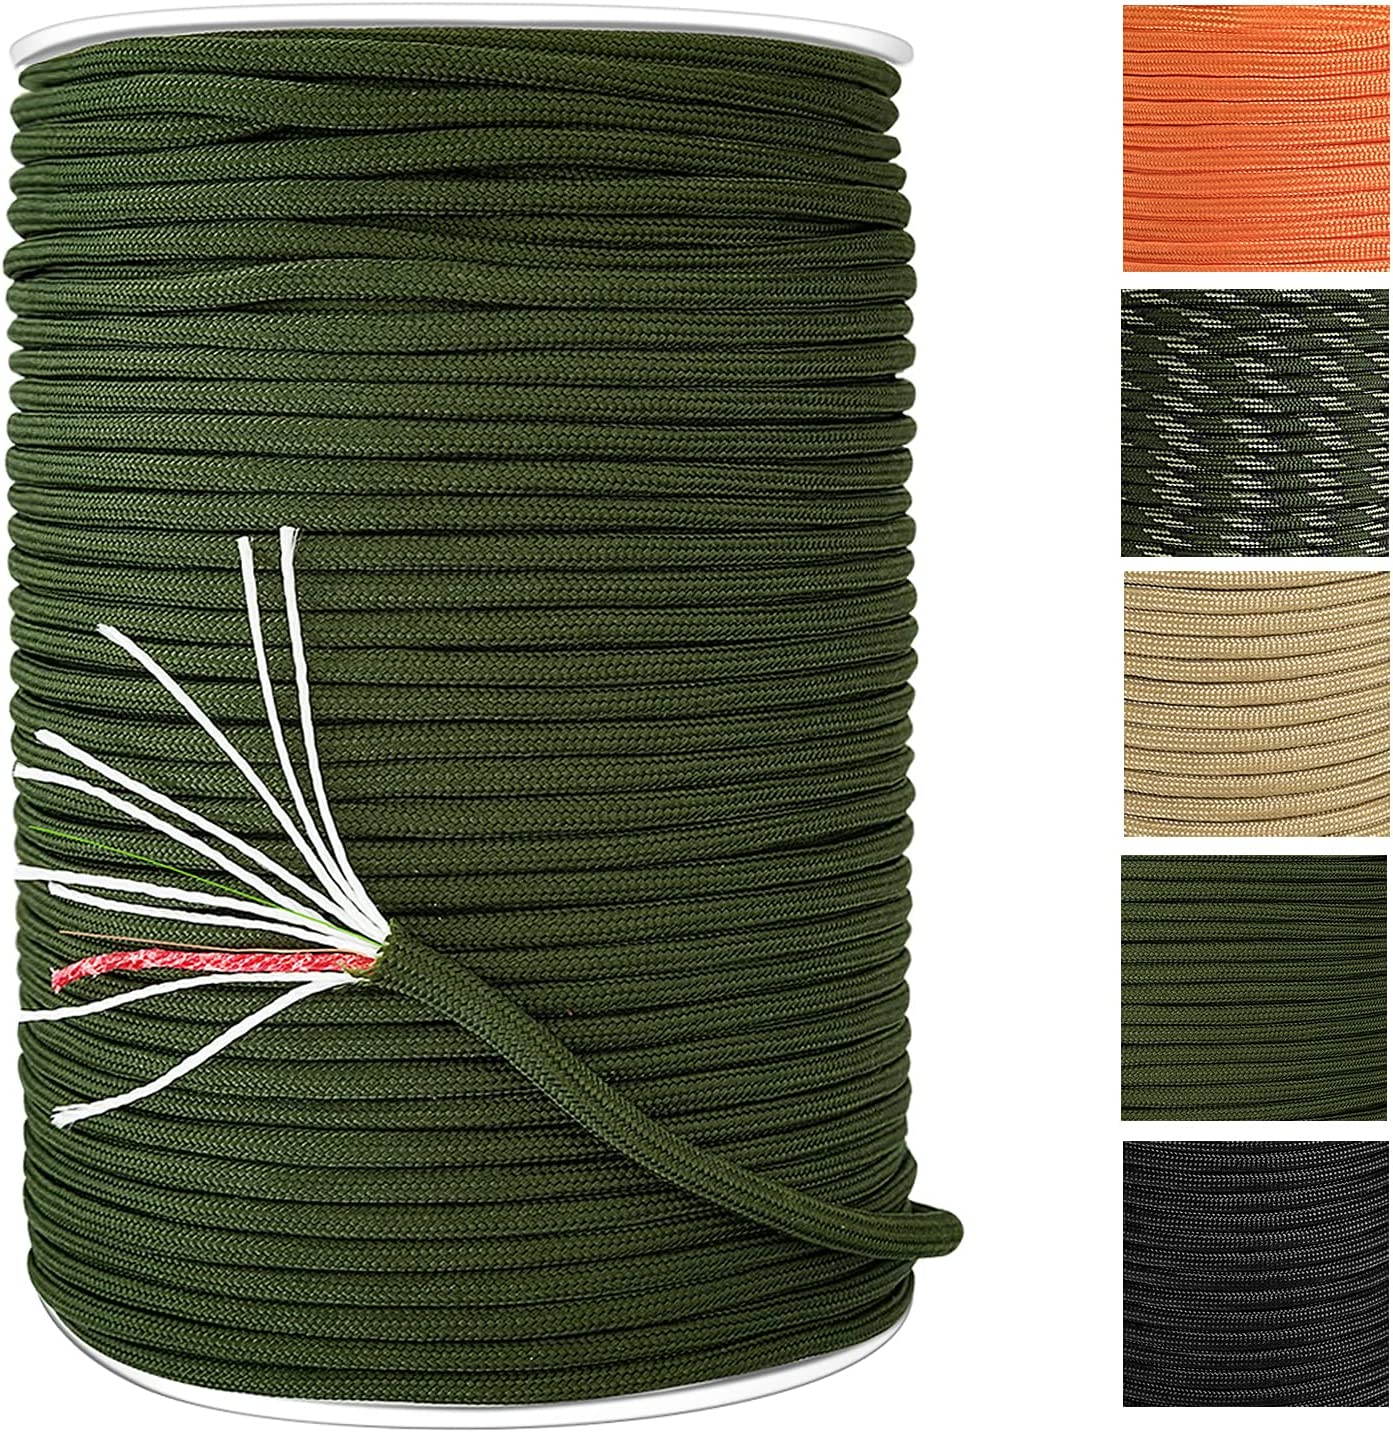 Balit 550 Survival Paracord SEAL limited Max 44% OFF product Tinder Fire Cord Spool Stra 12 330ft